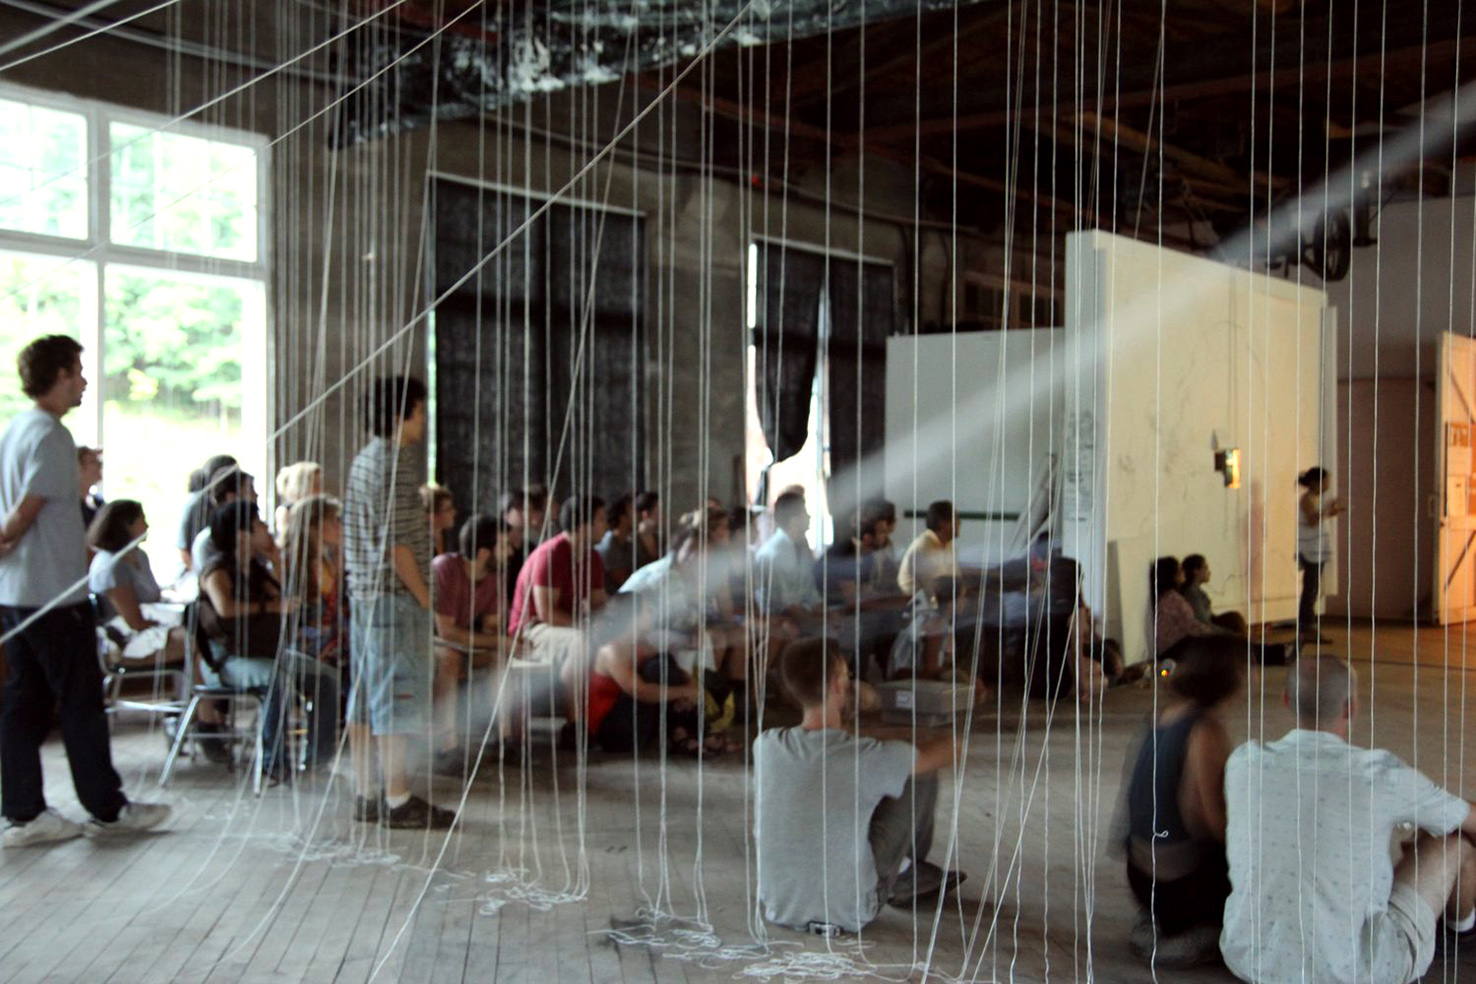 mill_space_performance_audience_string_2012.jpg